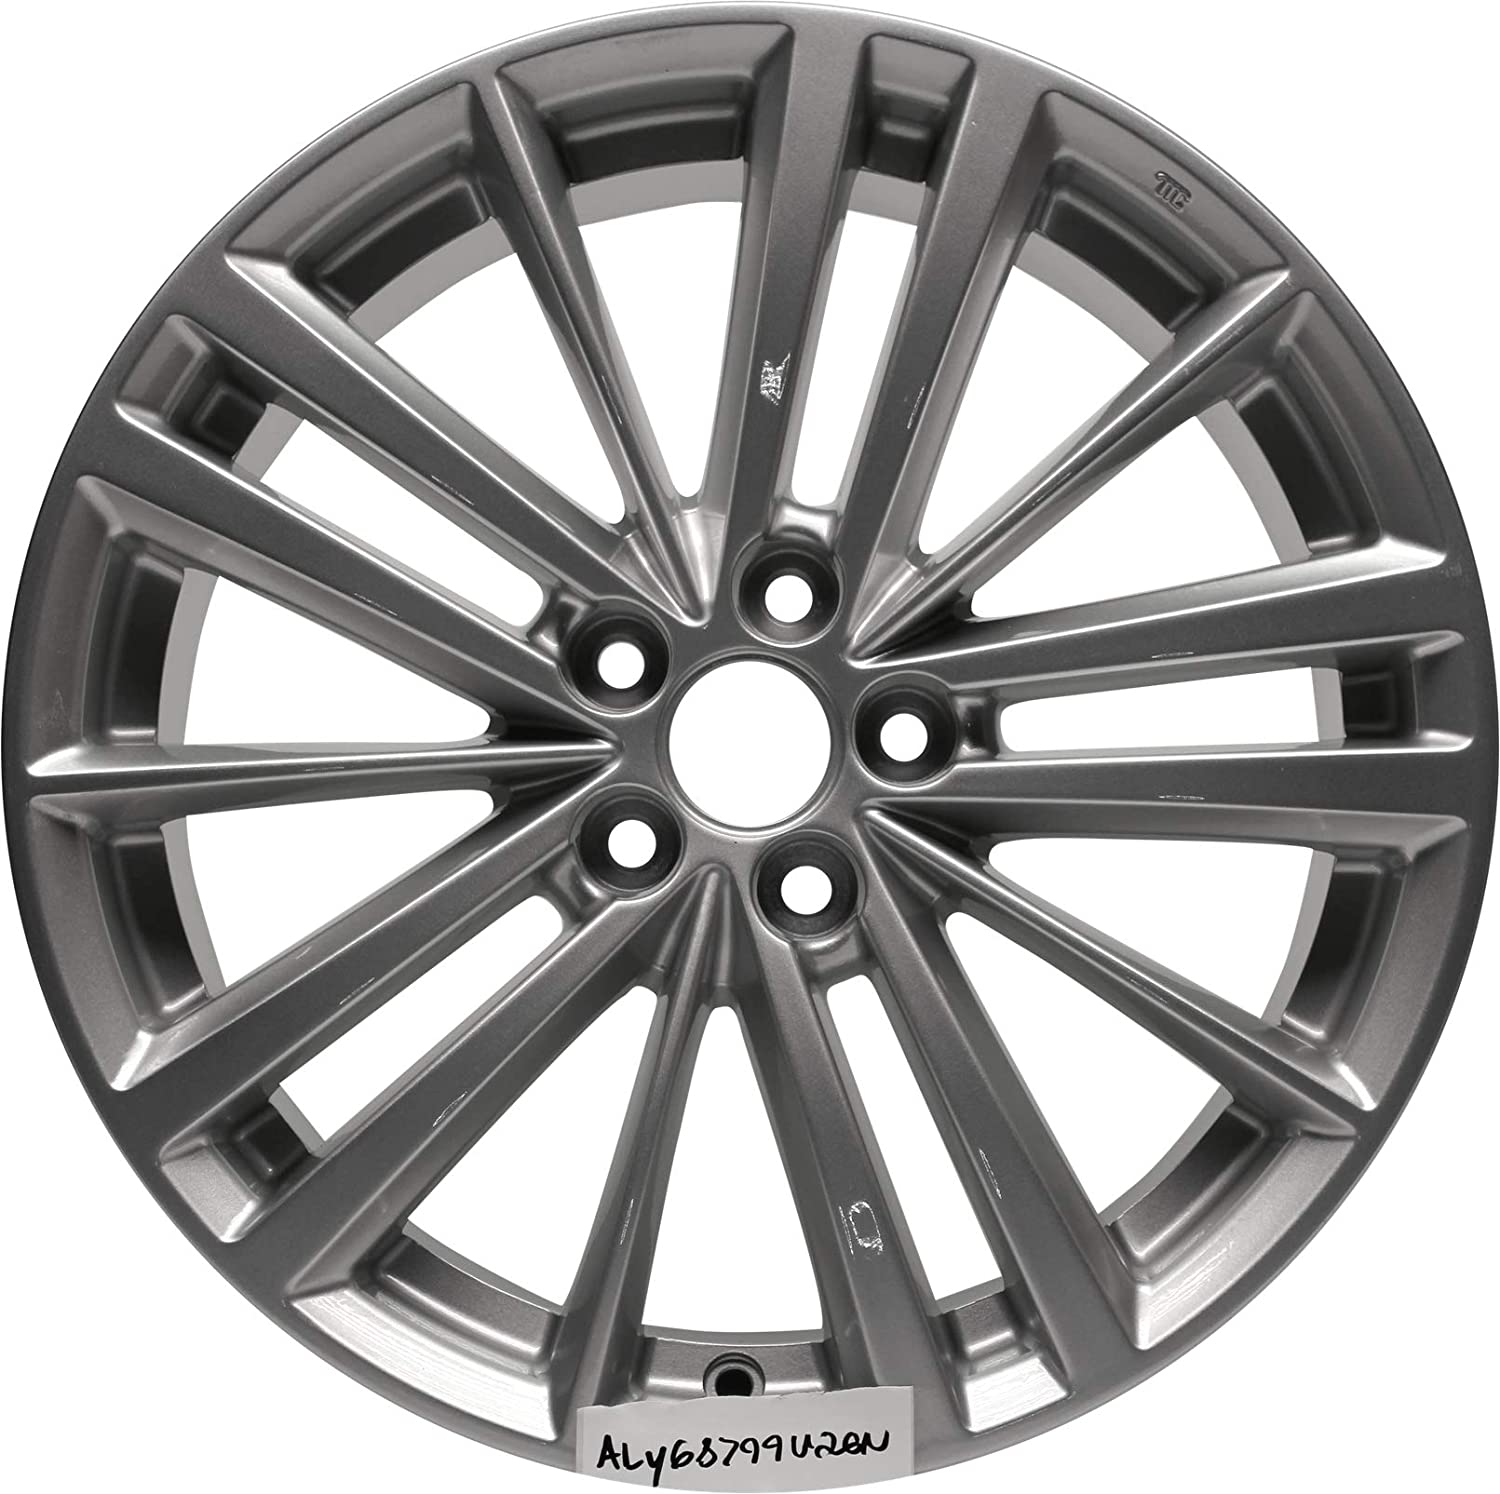 Partsynergy Replacement For New Replica Aluminum Alloy Wheel Rim 17 Inch Fits 13-16 Subaru BR-Z 15 Spokes 5-102mm